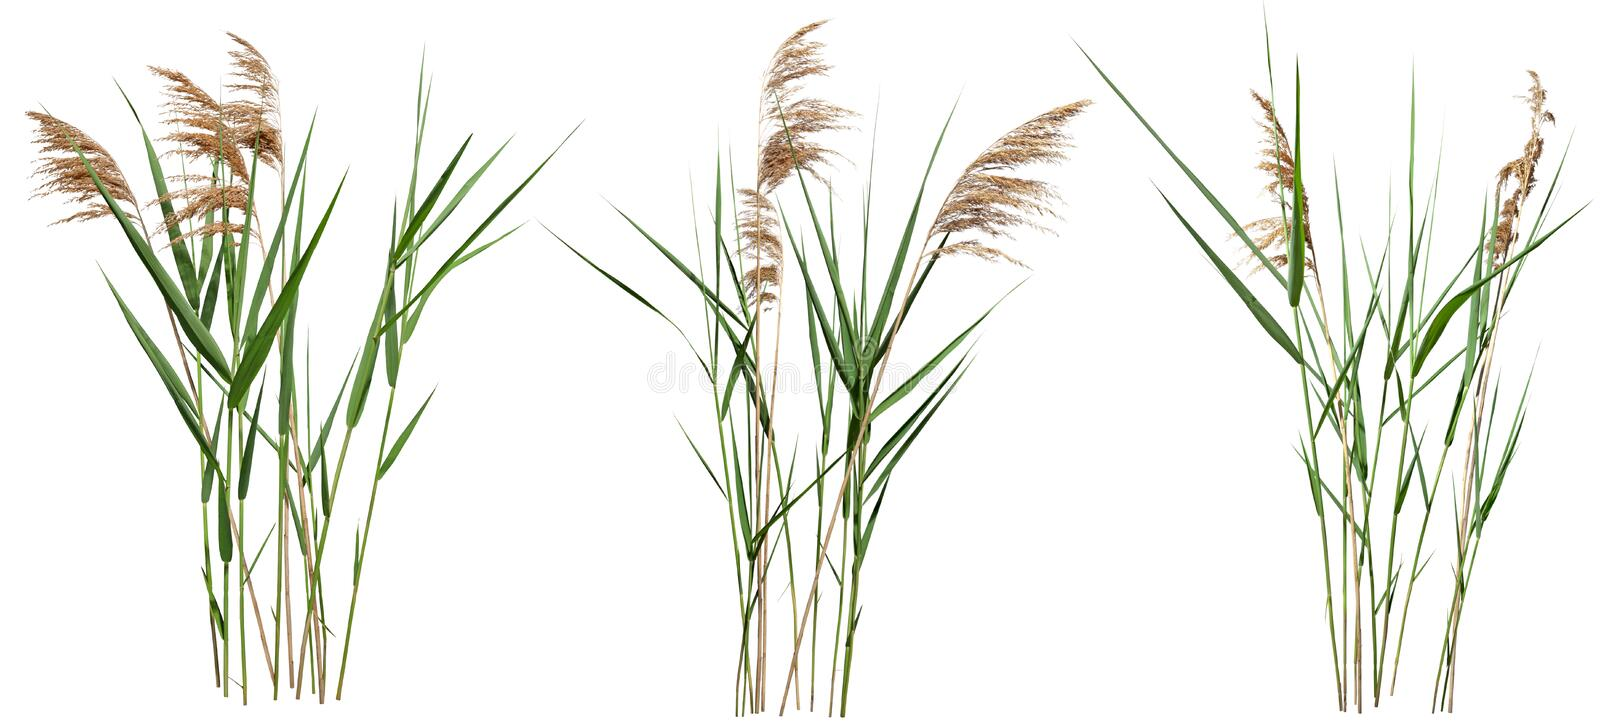 133 915 Reed Photos Free Royalty Free Stock Photos From Dreamstime